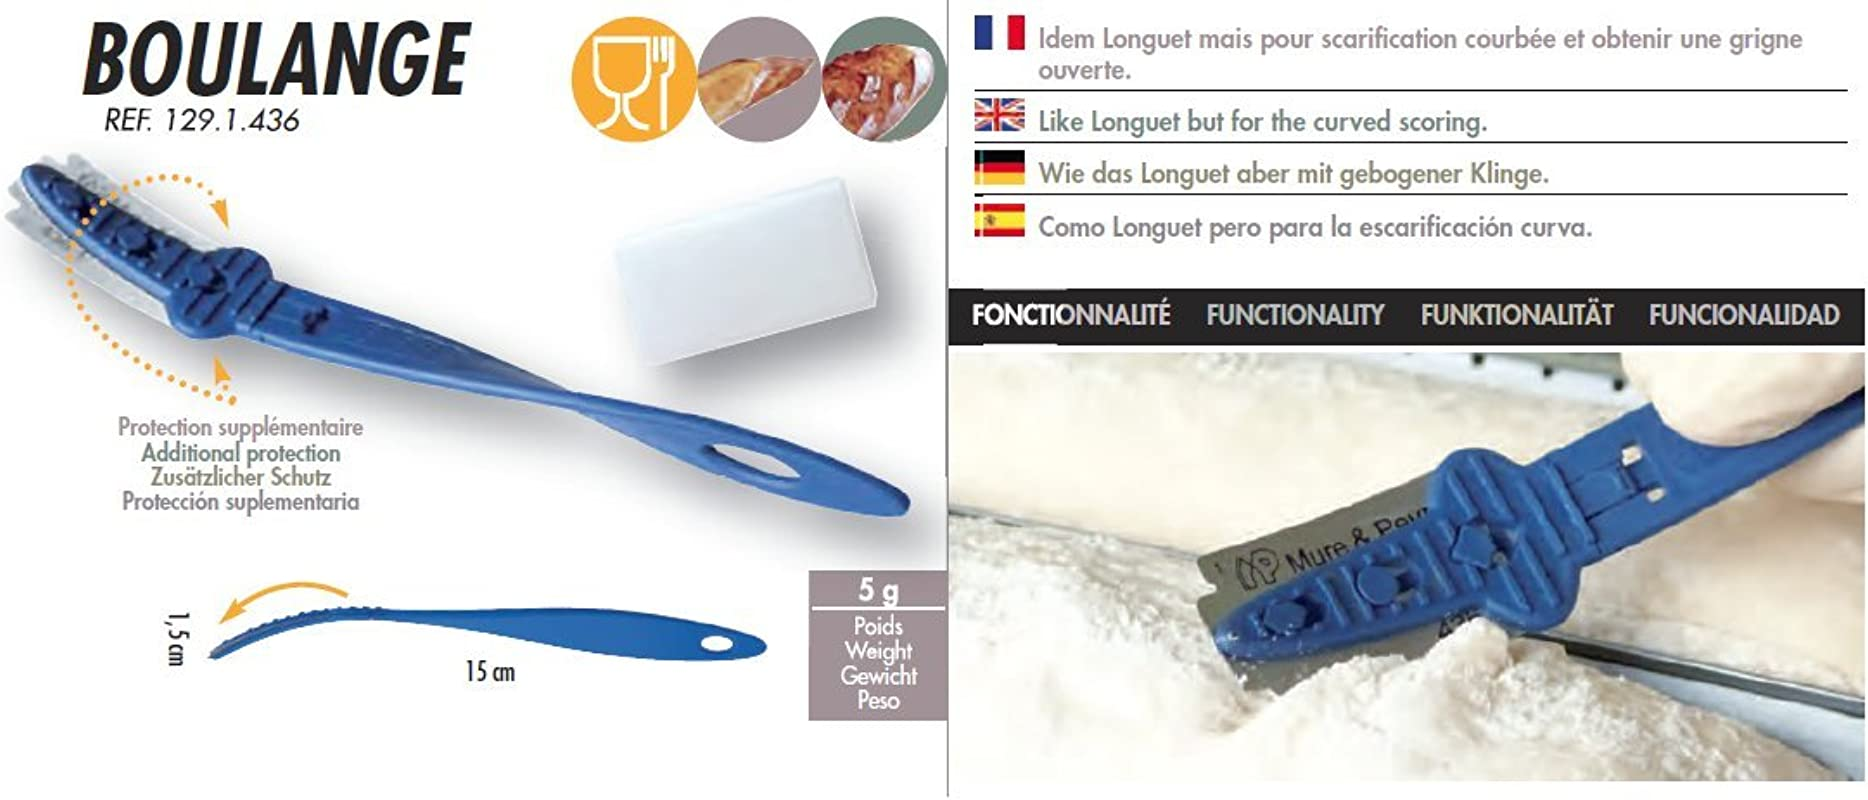 Mure Peyrot Bread Lame Made In France Model Boulange Professional Dough Scoring Tool With Safe Locking Mechanism One Protective Cover And One Blade Included Trusted Brand Since 1904